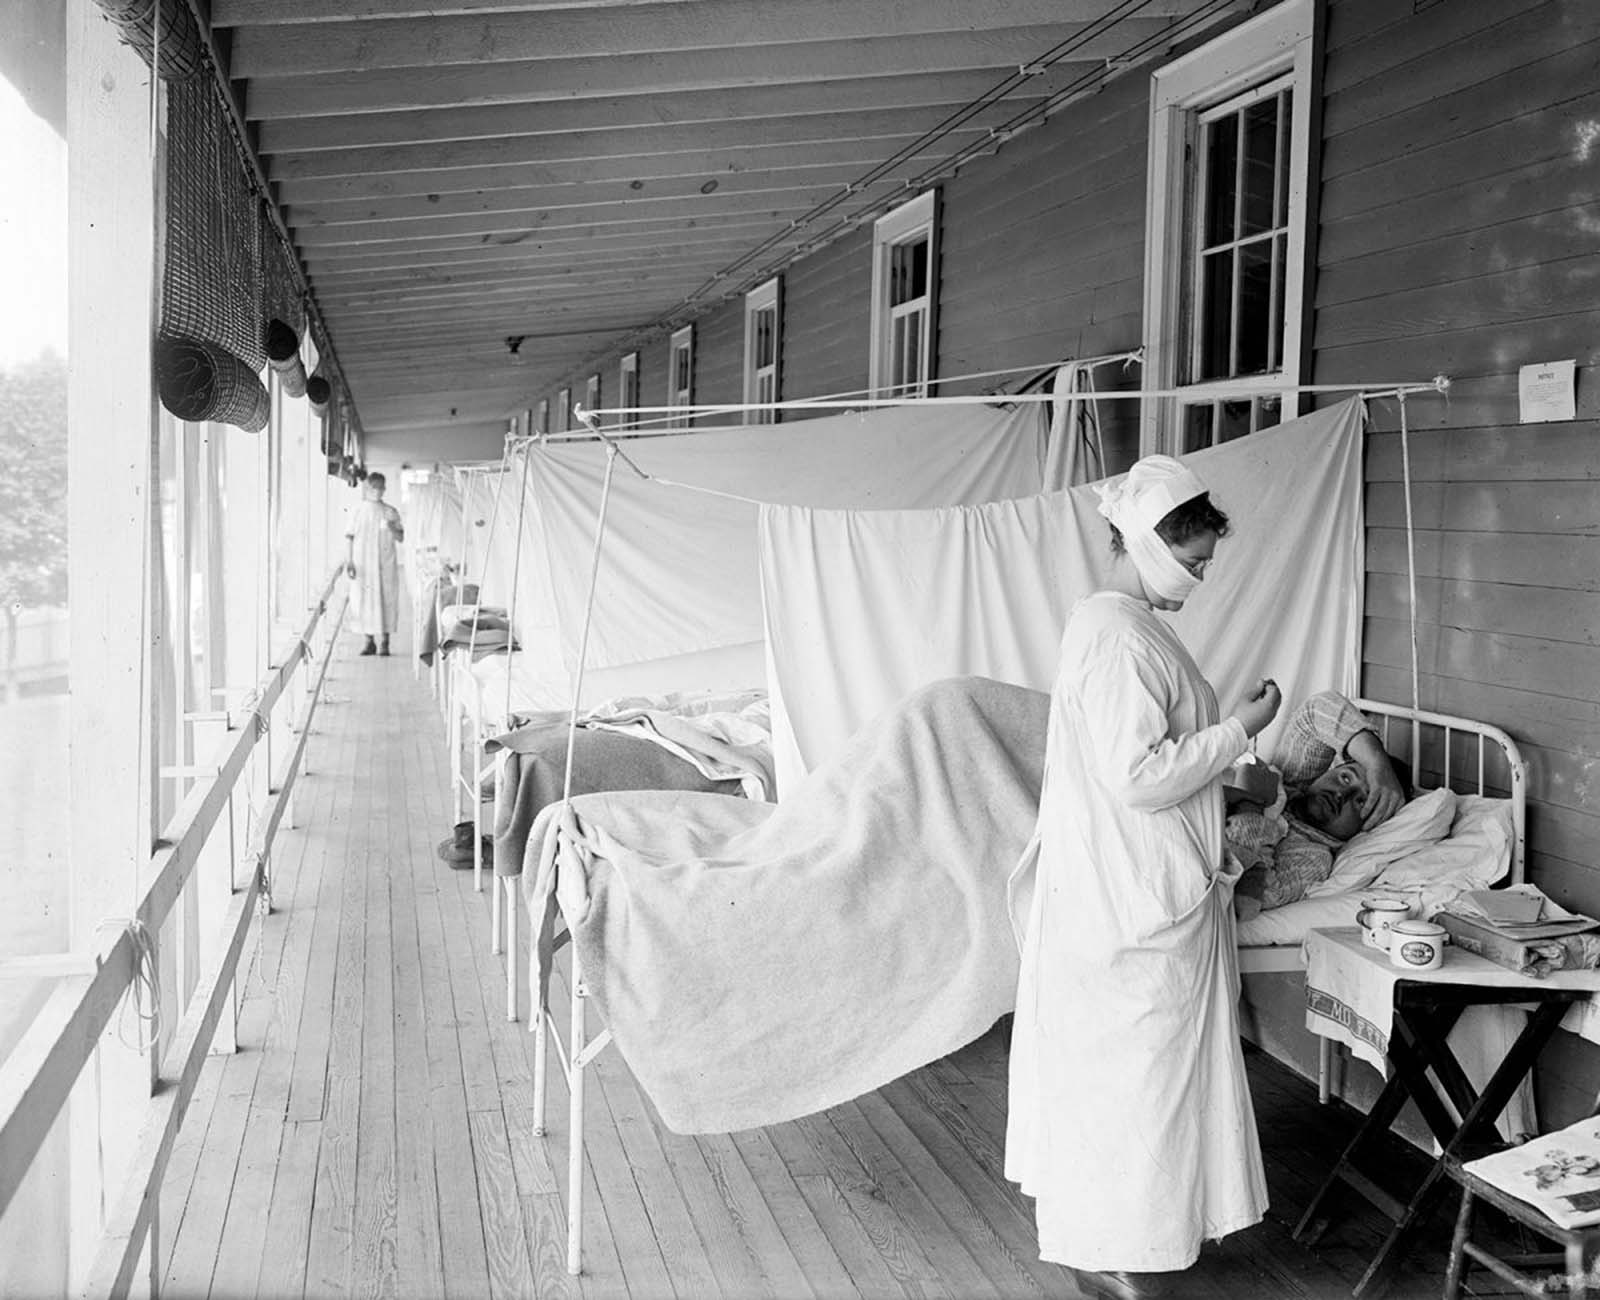 In this November 1918 photo, a nurse takes the pulse of a patient in the influenza ward of the Walter Reed hospital in Washington, D.C.